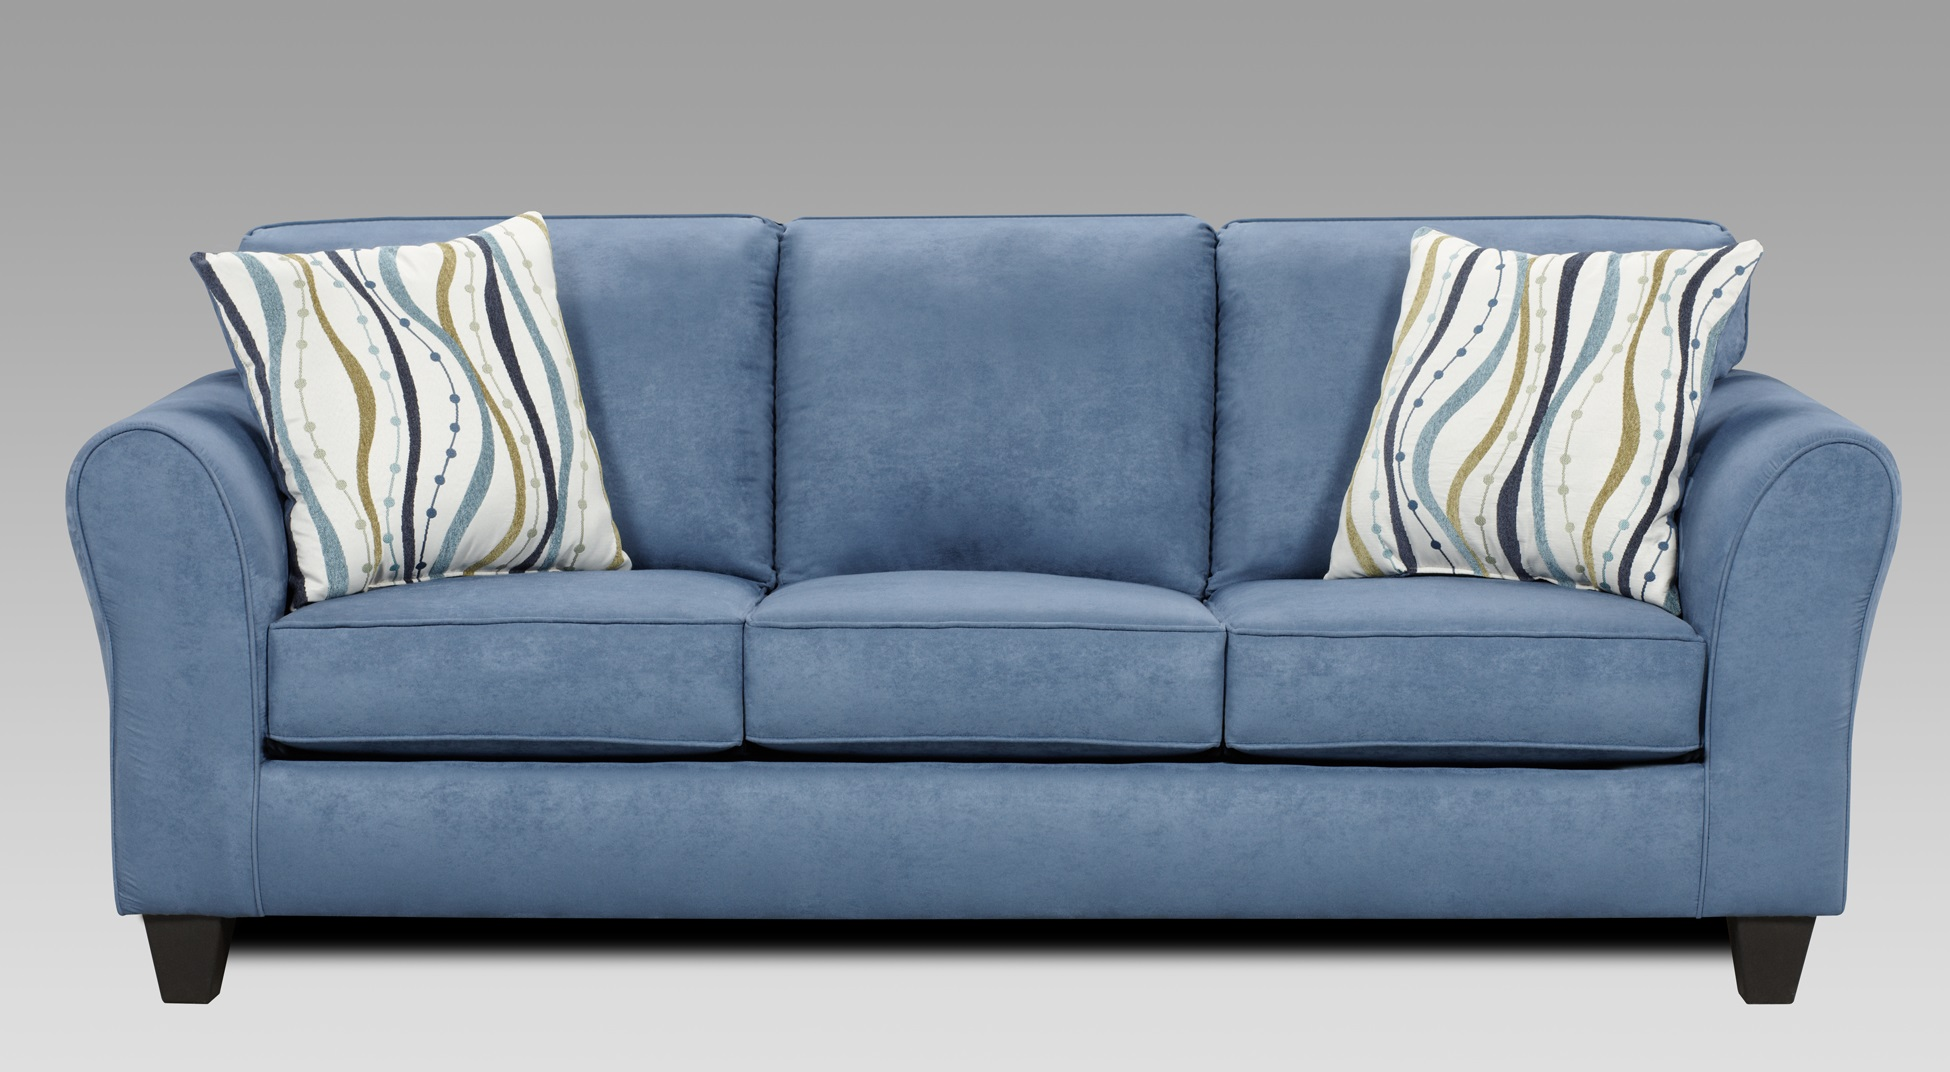 Patriot Blue Microfiber Sofa And Loveseat Set W/ Pillows , Made In USA Item  No: LAF5000PB